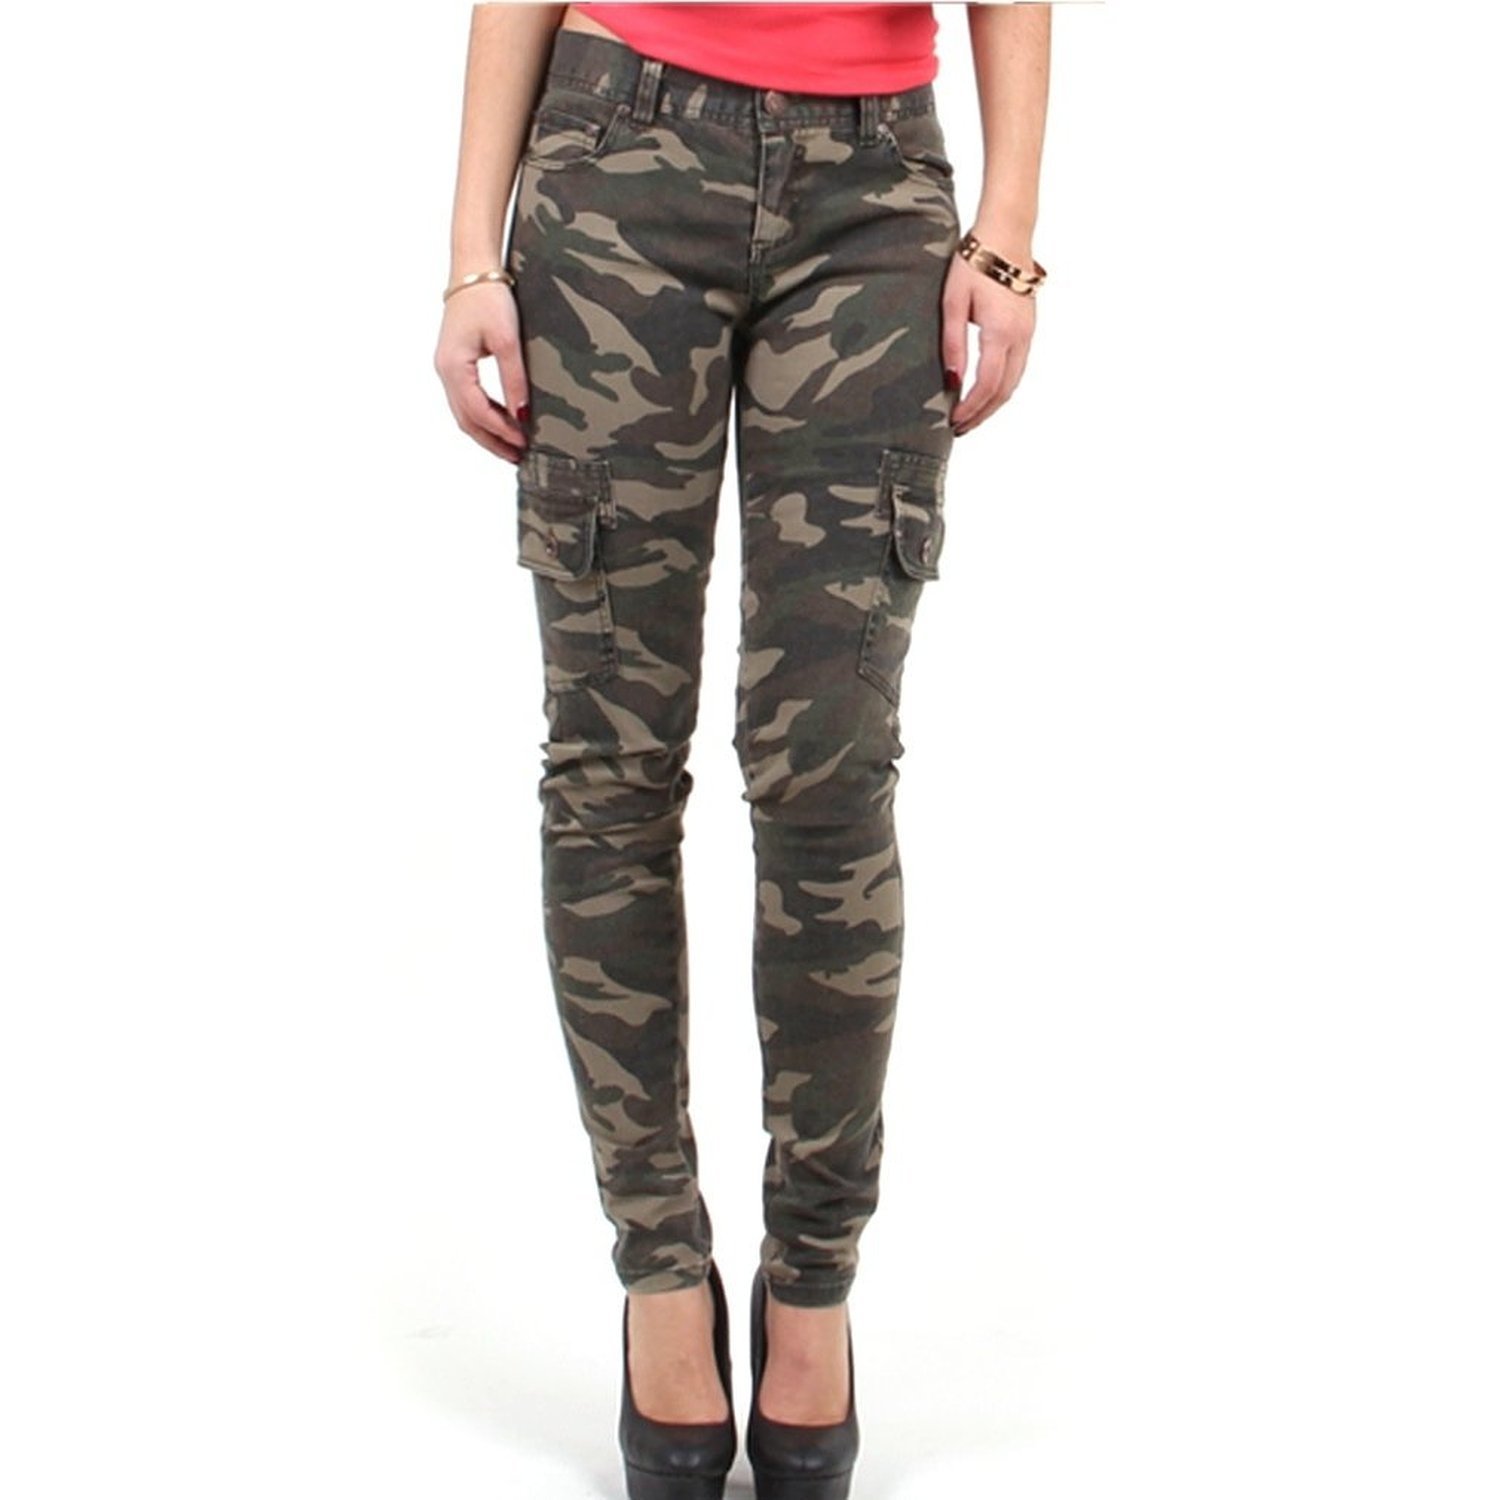 Excellent Rocky Outdoor Pants Womens Quality SilentHunter Camo Cargo 602440